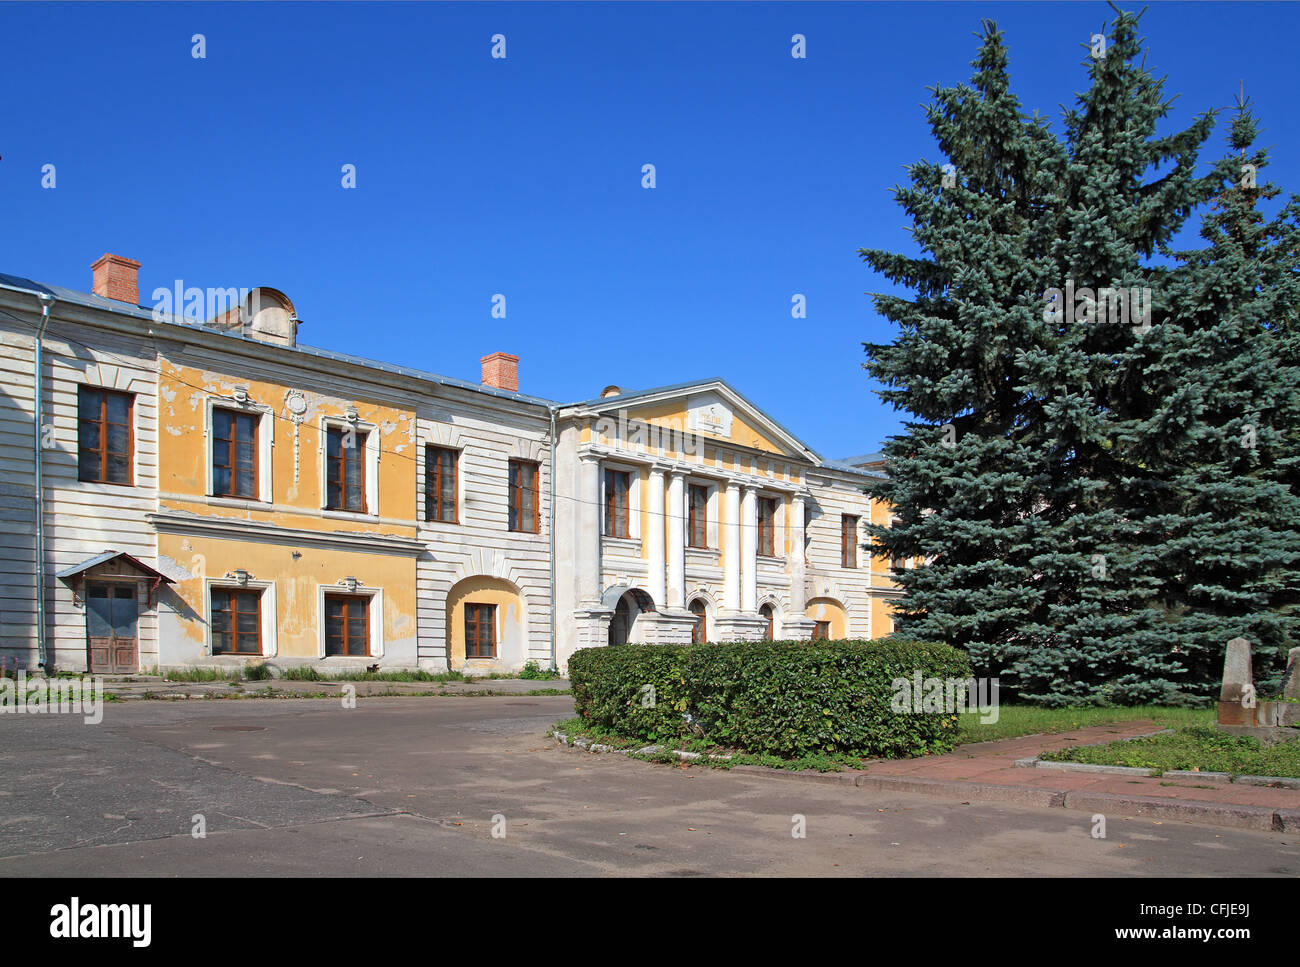 town park near old-time building - Stock Image